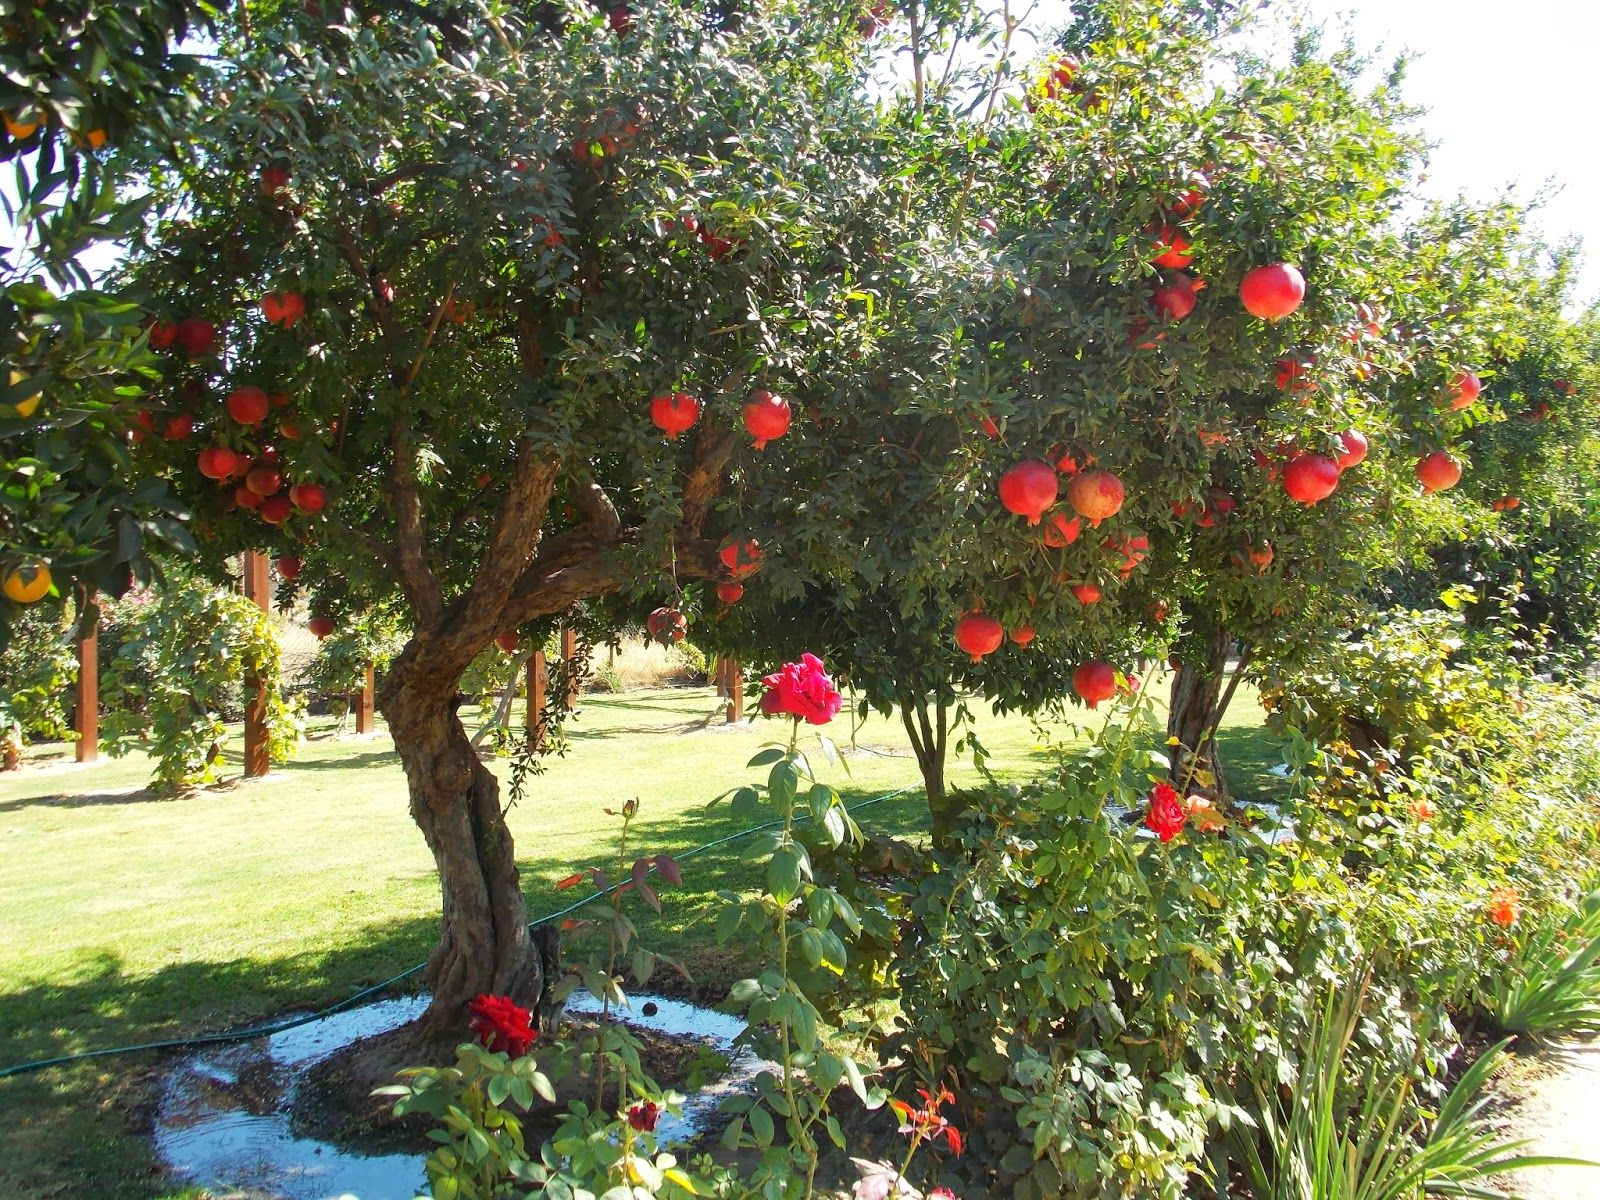 Growing Pomegranate Trees Wonderful Pomegranate Tree A Pomegranate